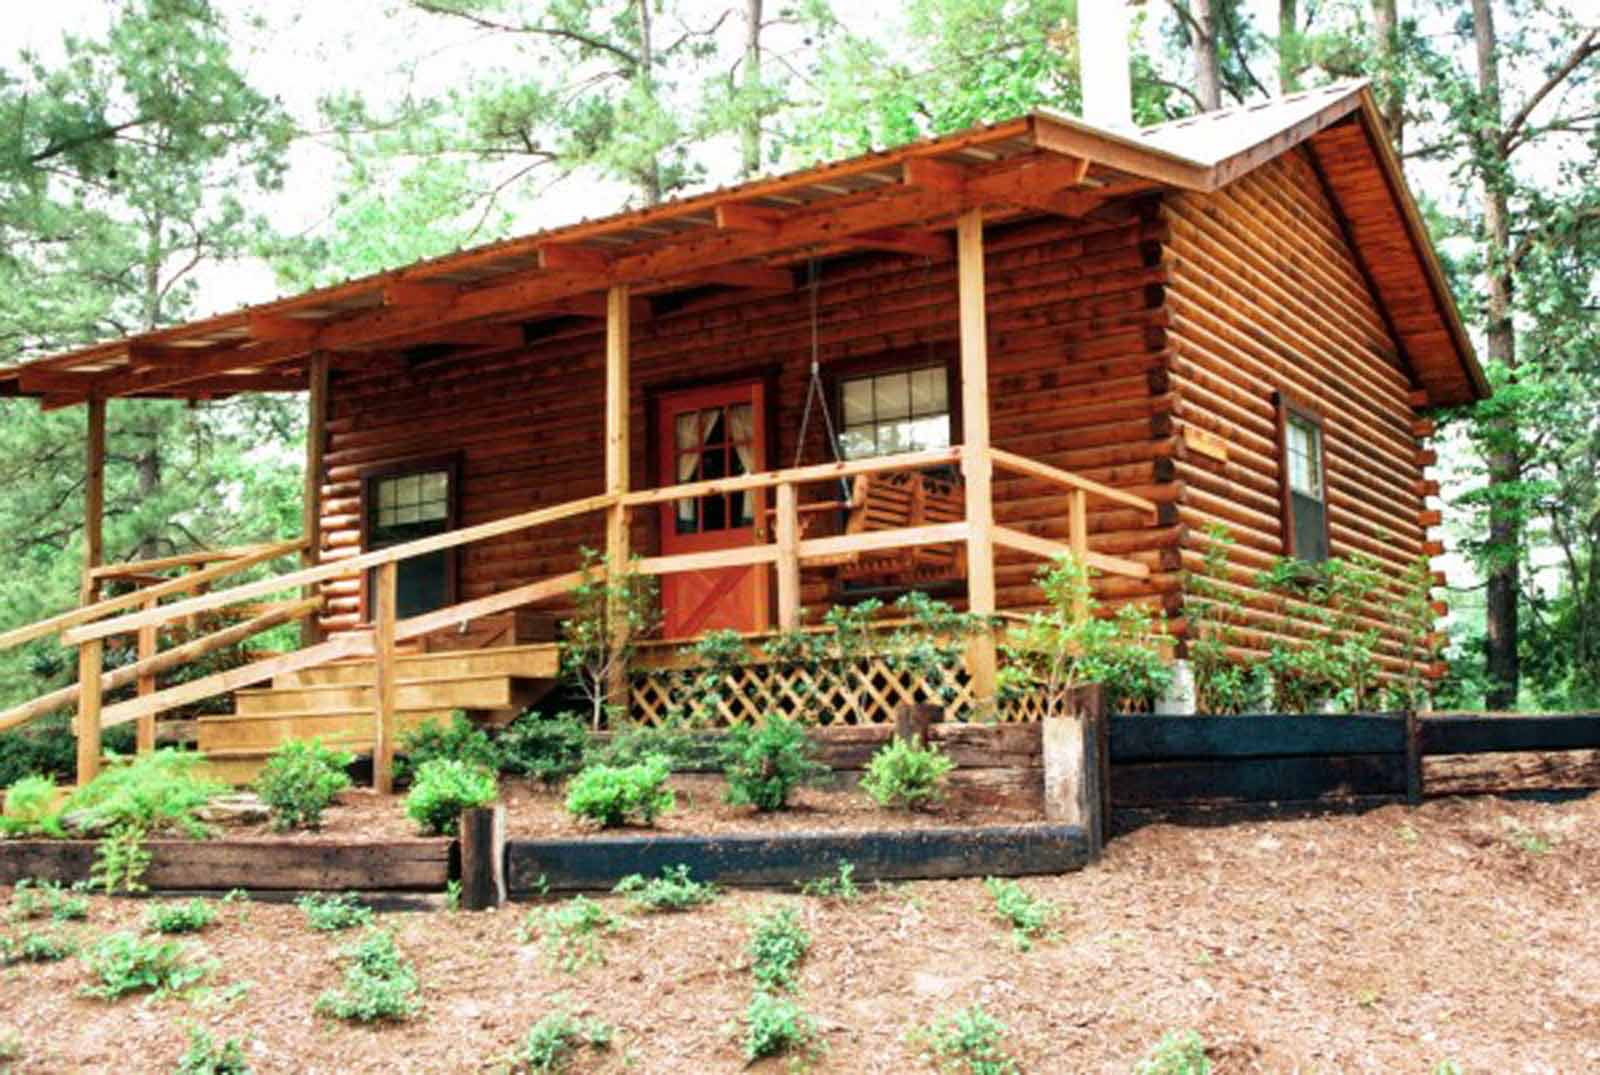 One bedroom log cabin 28 images branson woods 1 for One room log cabin for sale